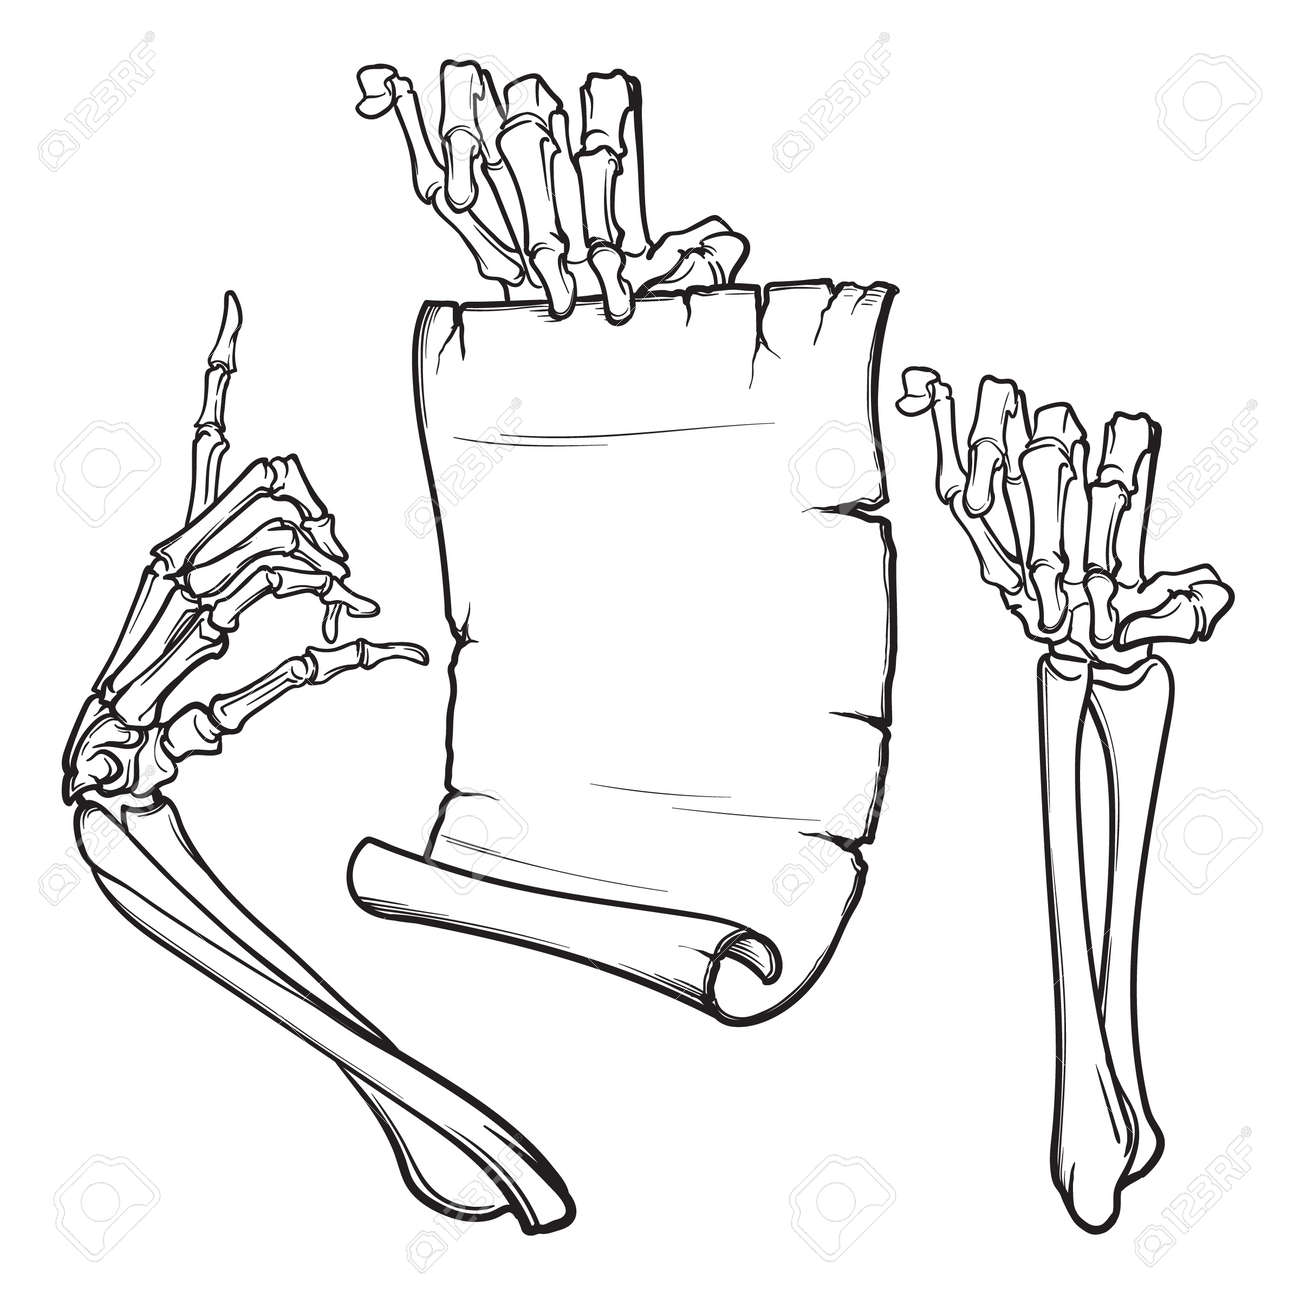 Halloween design elements with skeleton hands and paper scroll. - 88094550